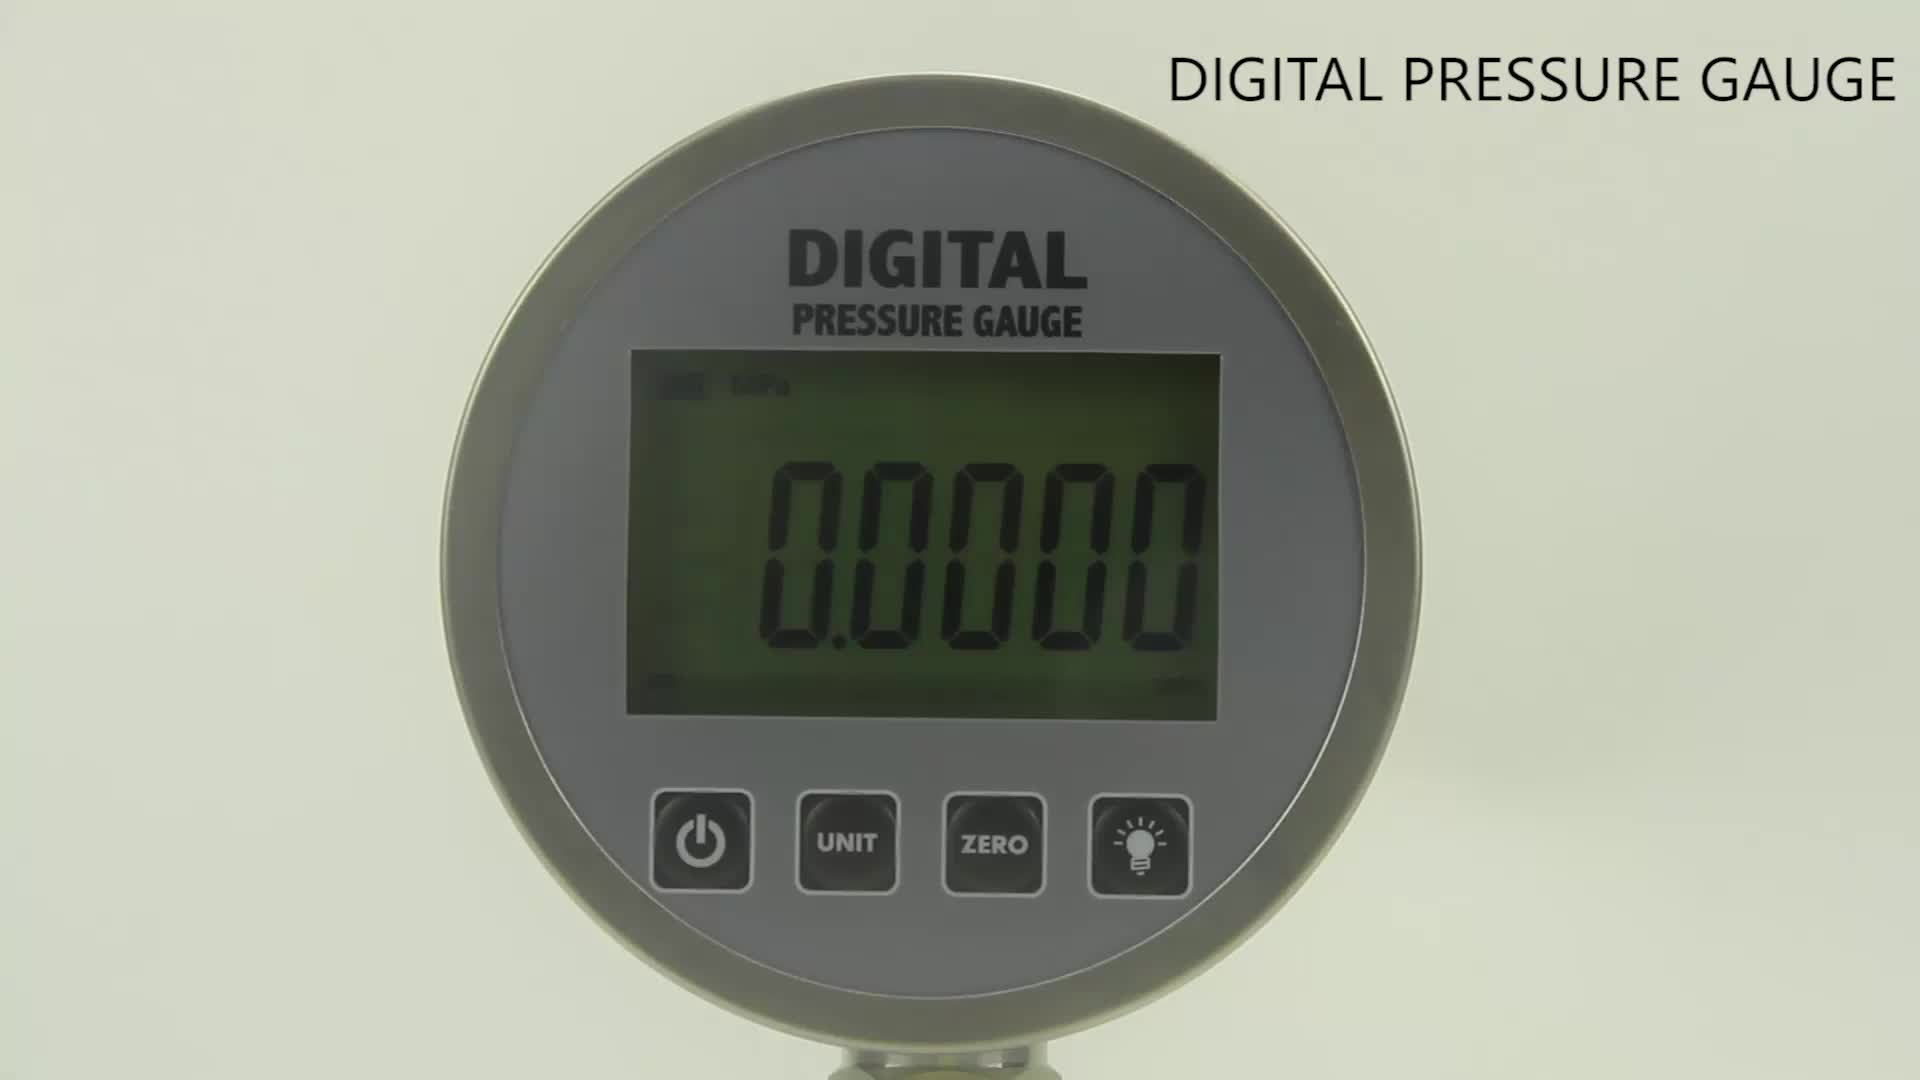 0-100MPa LCD digital display mbar low pressure gauge for gas